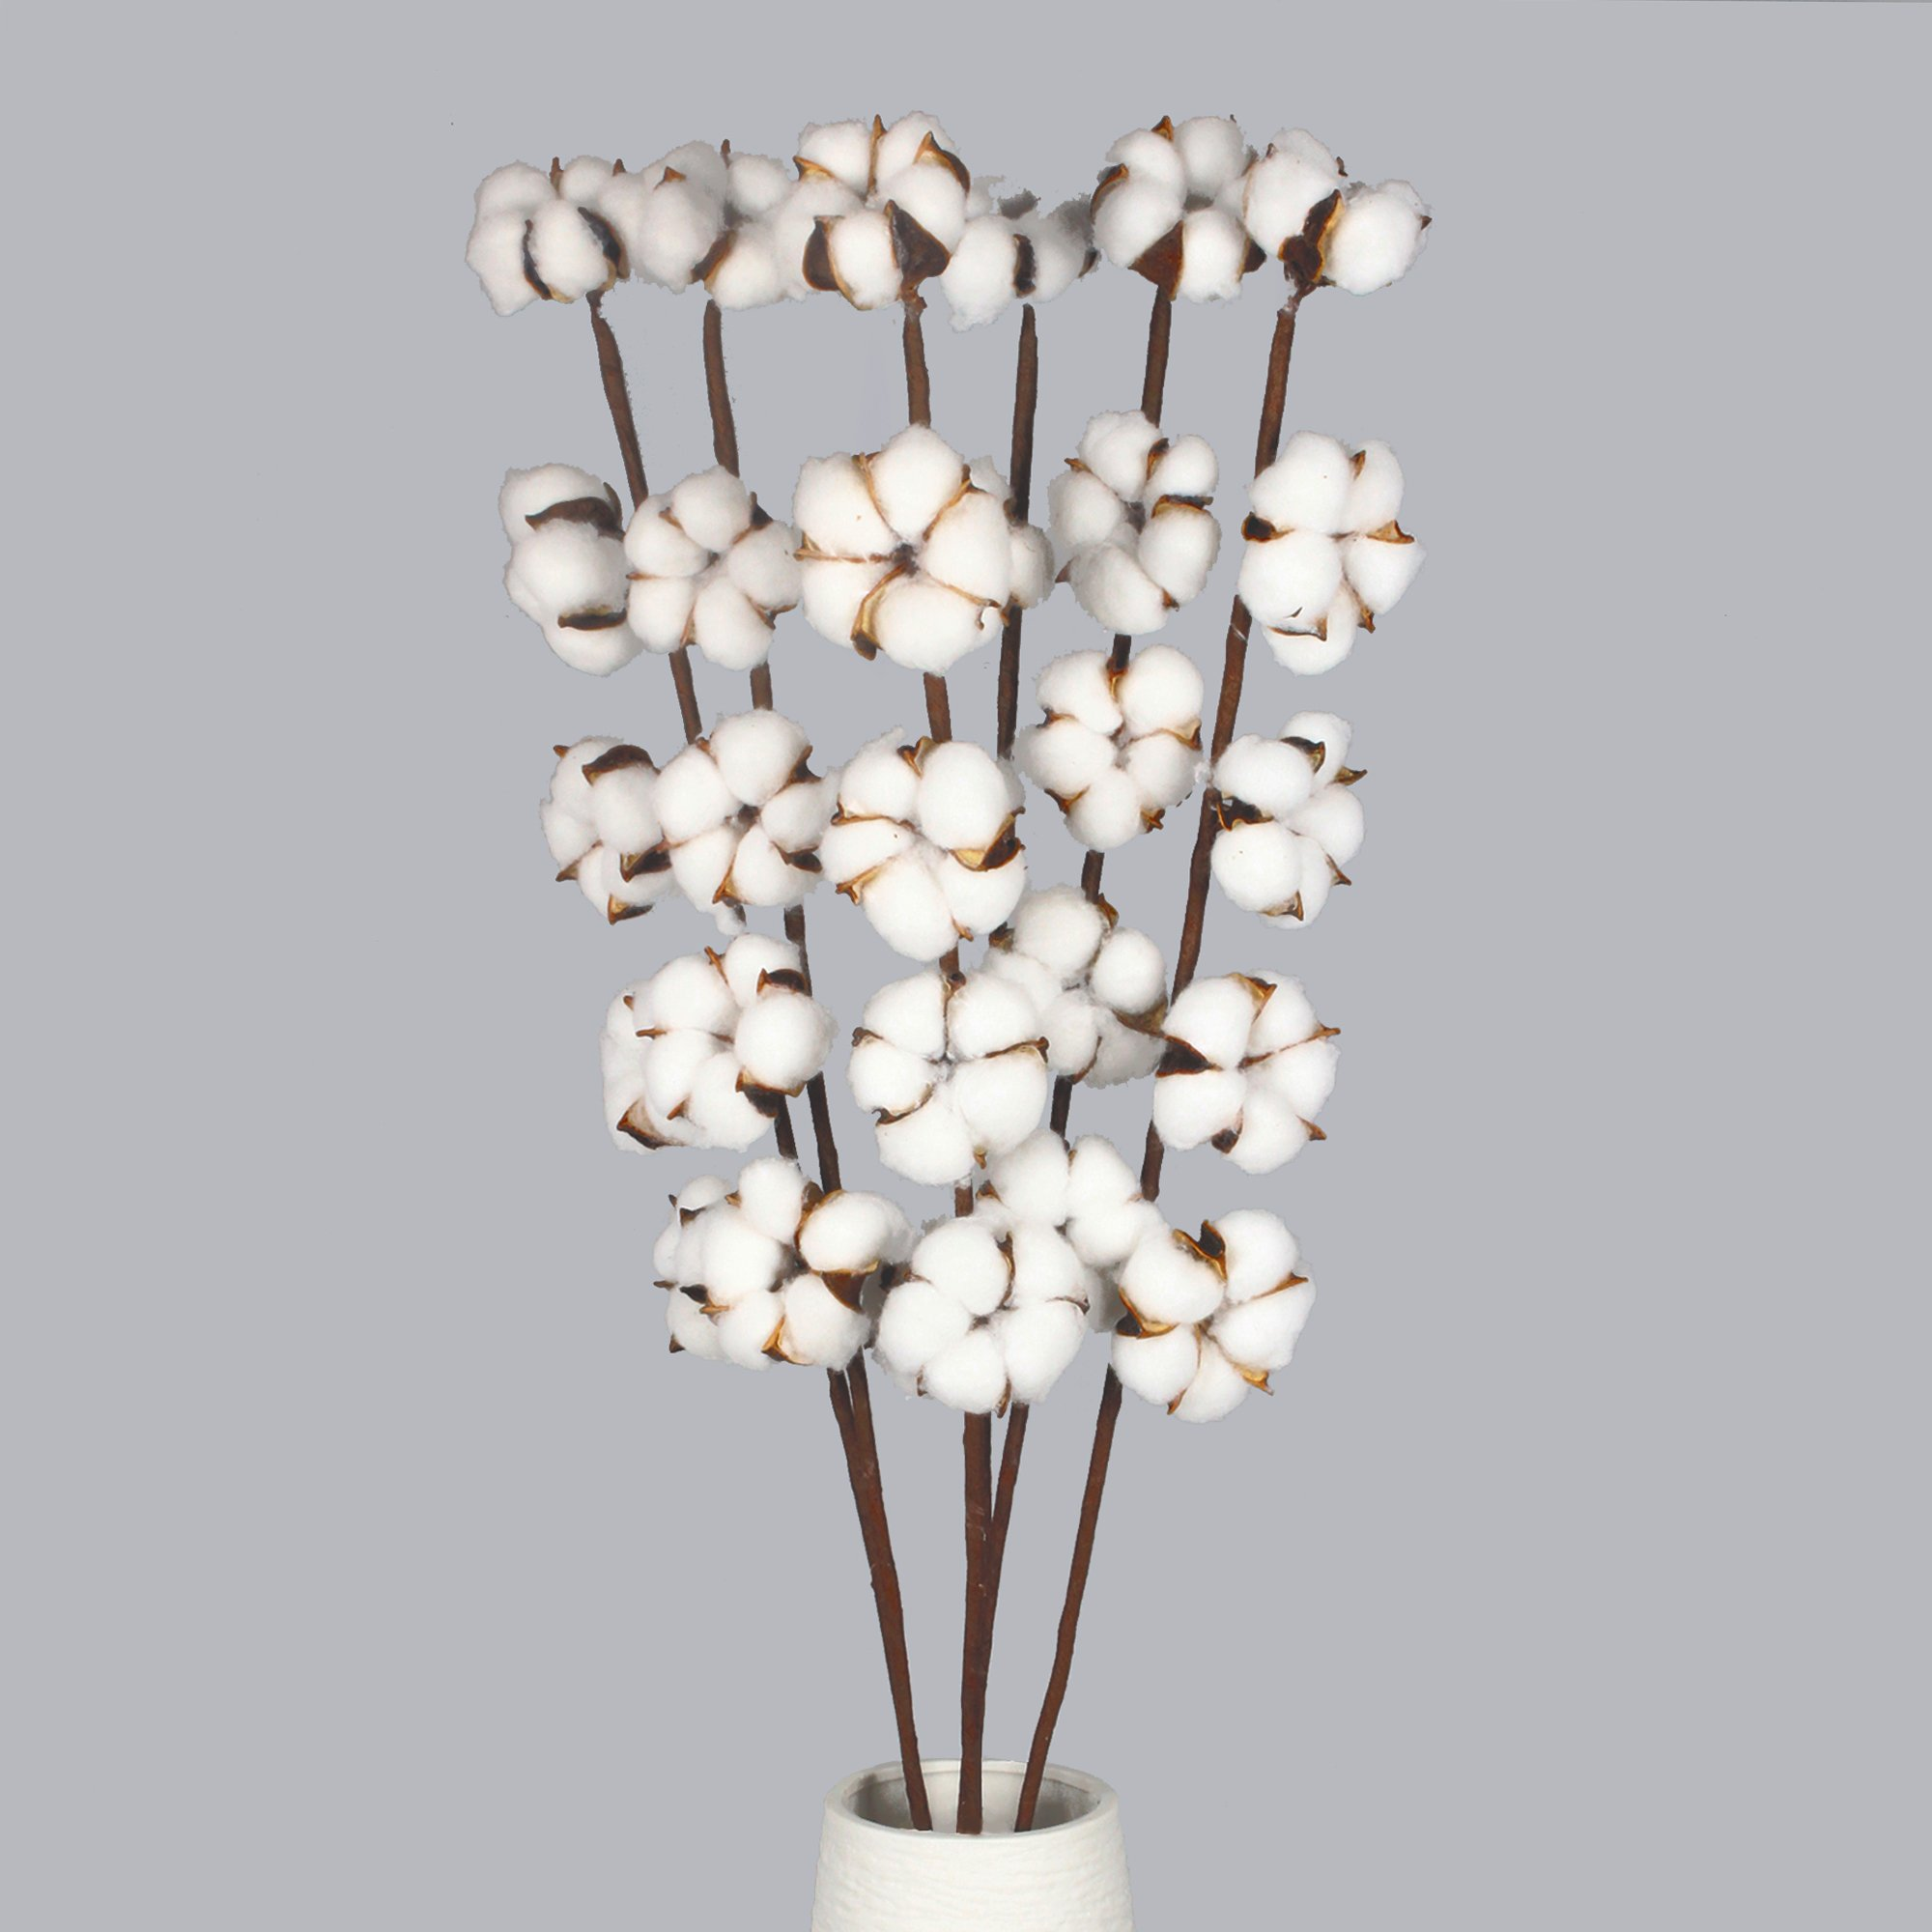 Buy 6 Pack 27 Inch Cotton Stems Farmhouse Decor Rustic Style Vase Filler Floral Decoration Flower Vgia In Cheap Price On Alibaba Com